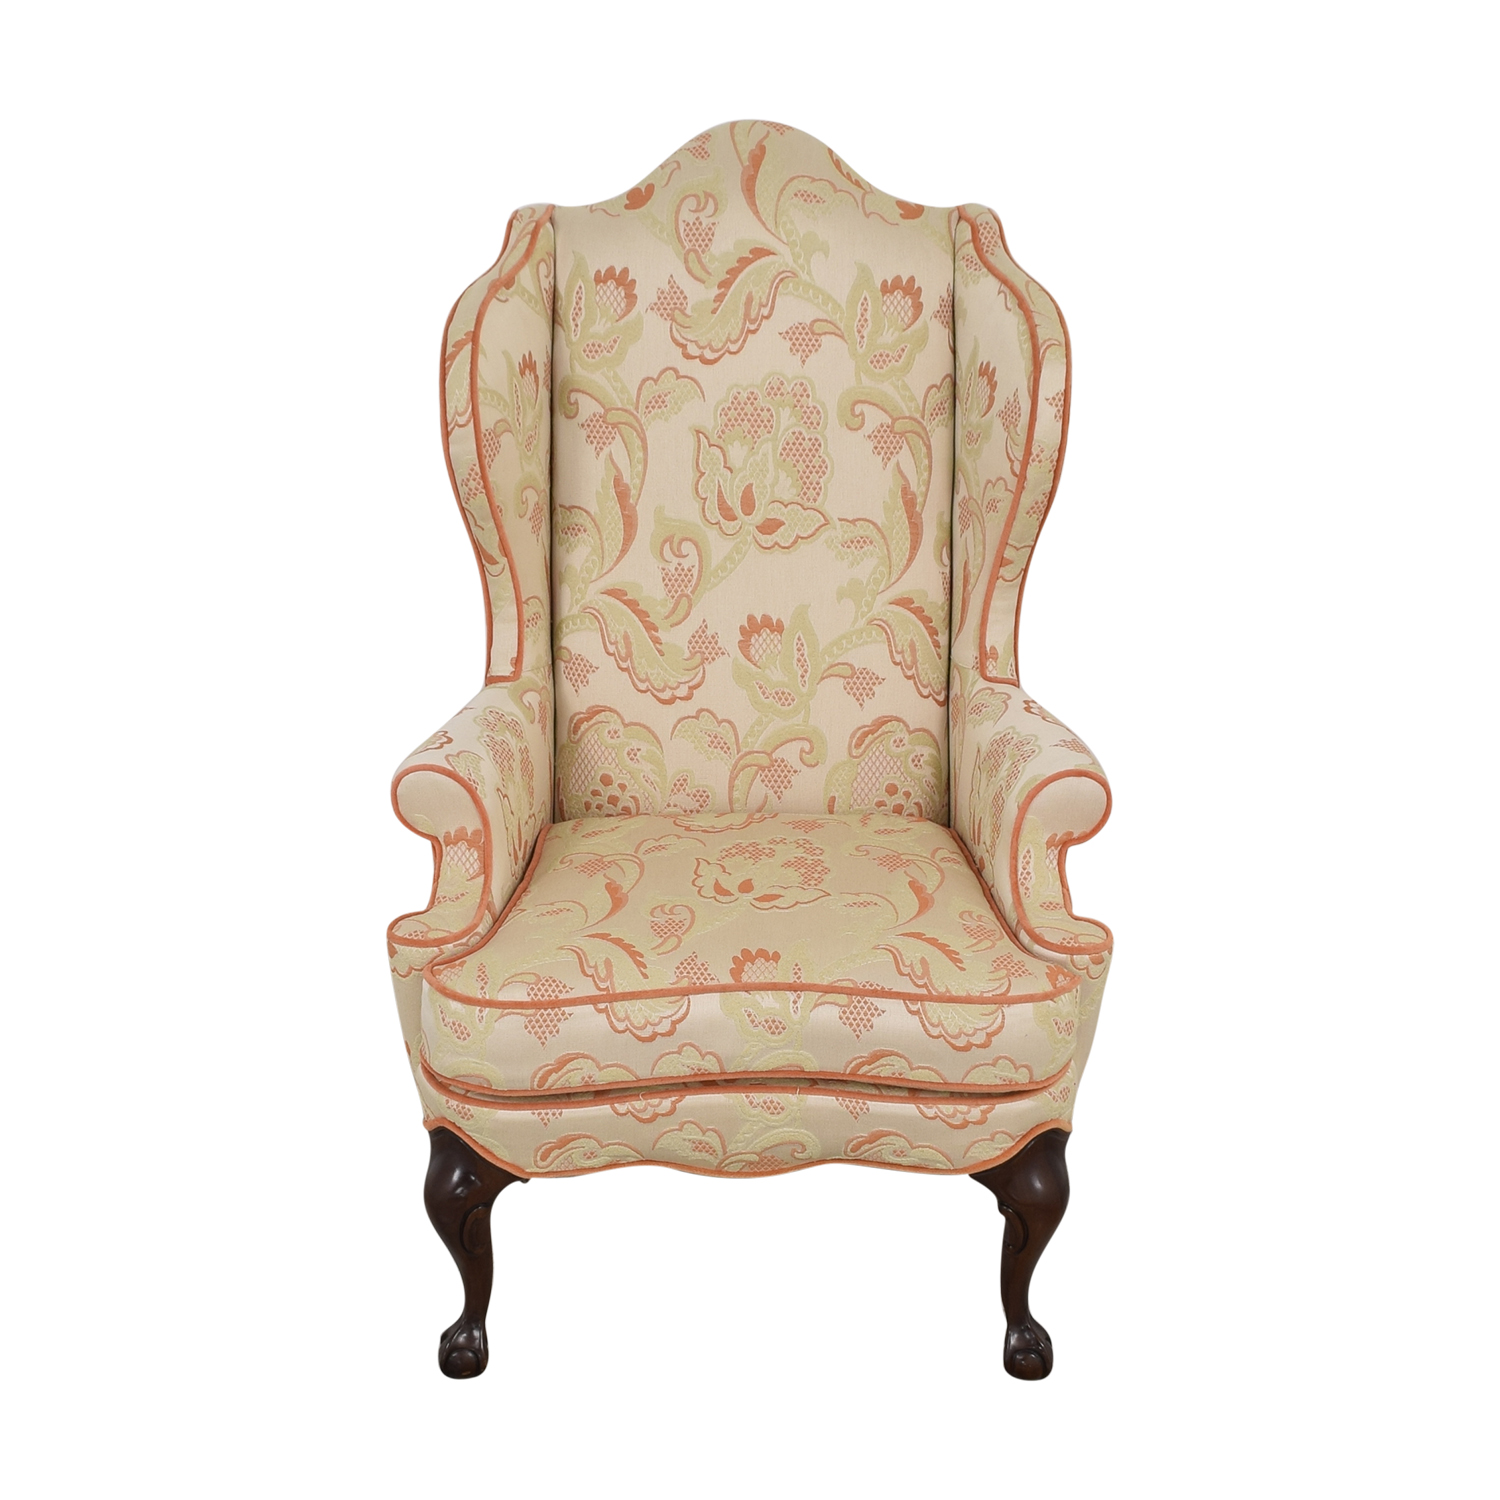 shop Macy's Upholstered Wingback Chair Macy's Chairs